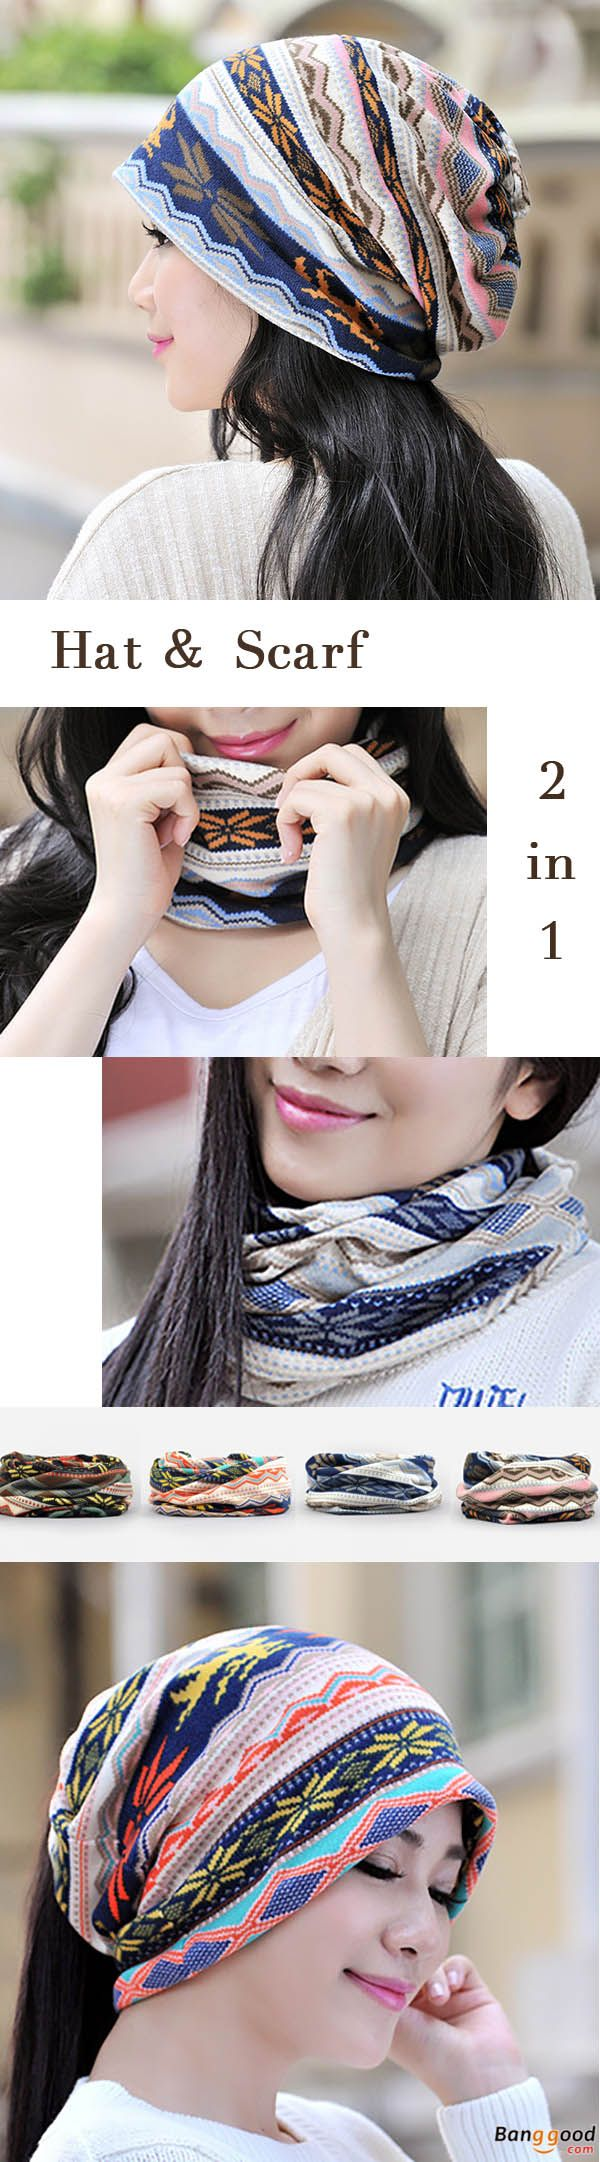 US$7.99 + Free shipping. Suitable in Spring, Autumn, Winter. Applies To Casual, Vacation, Shopping Occasions. Woman Hat, Multifunctional Cap, Bonnet Cap, Neck Scarves, Windproof Visor Hat.